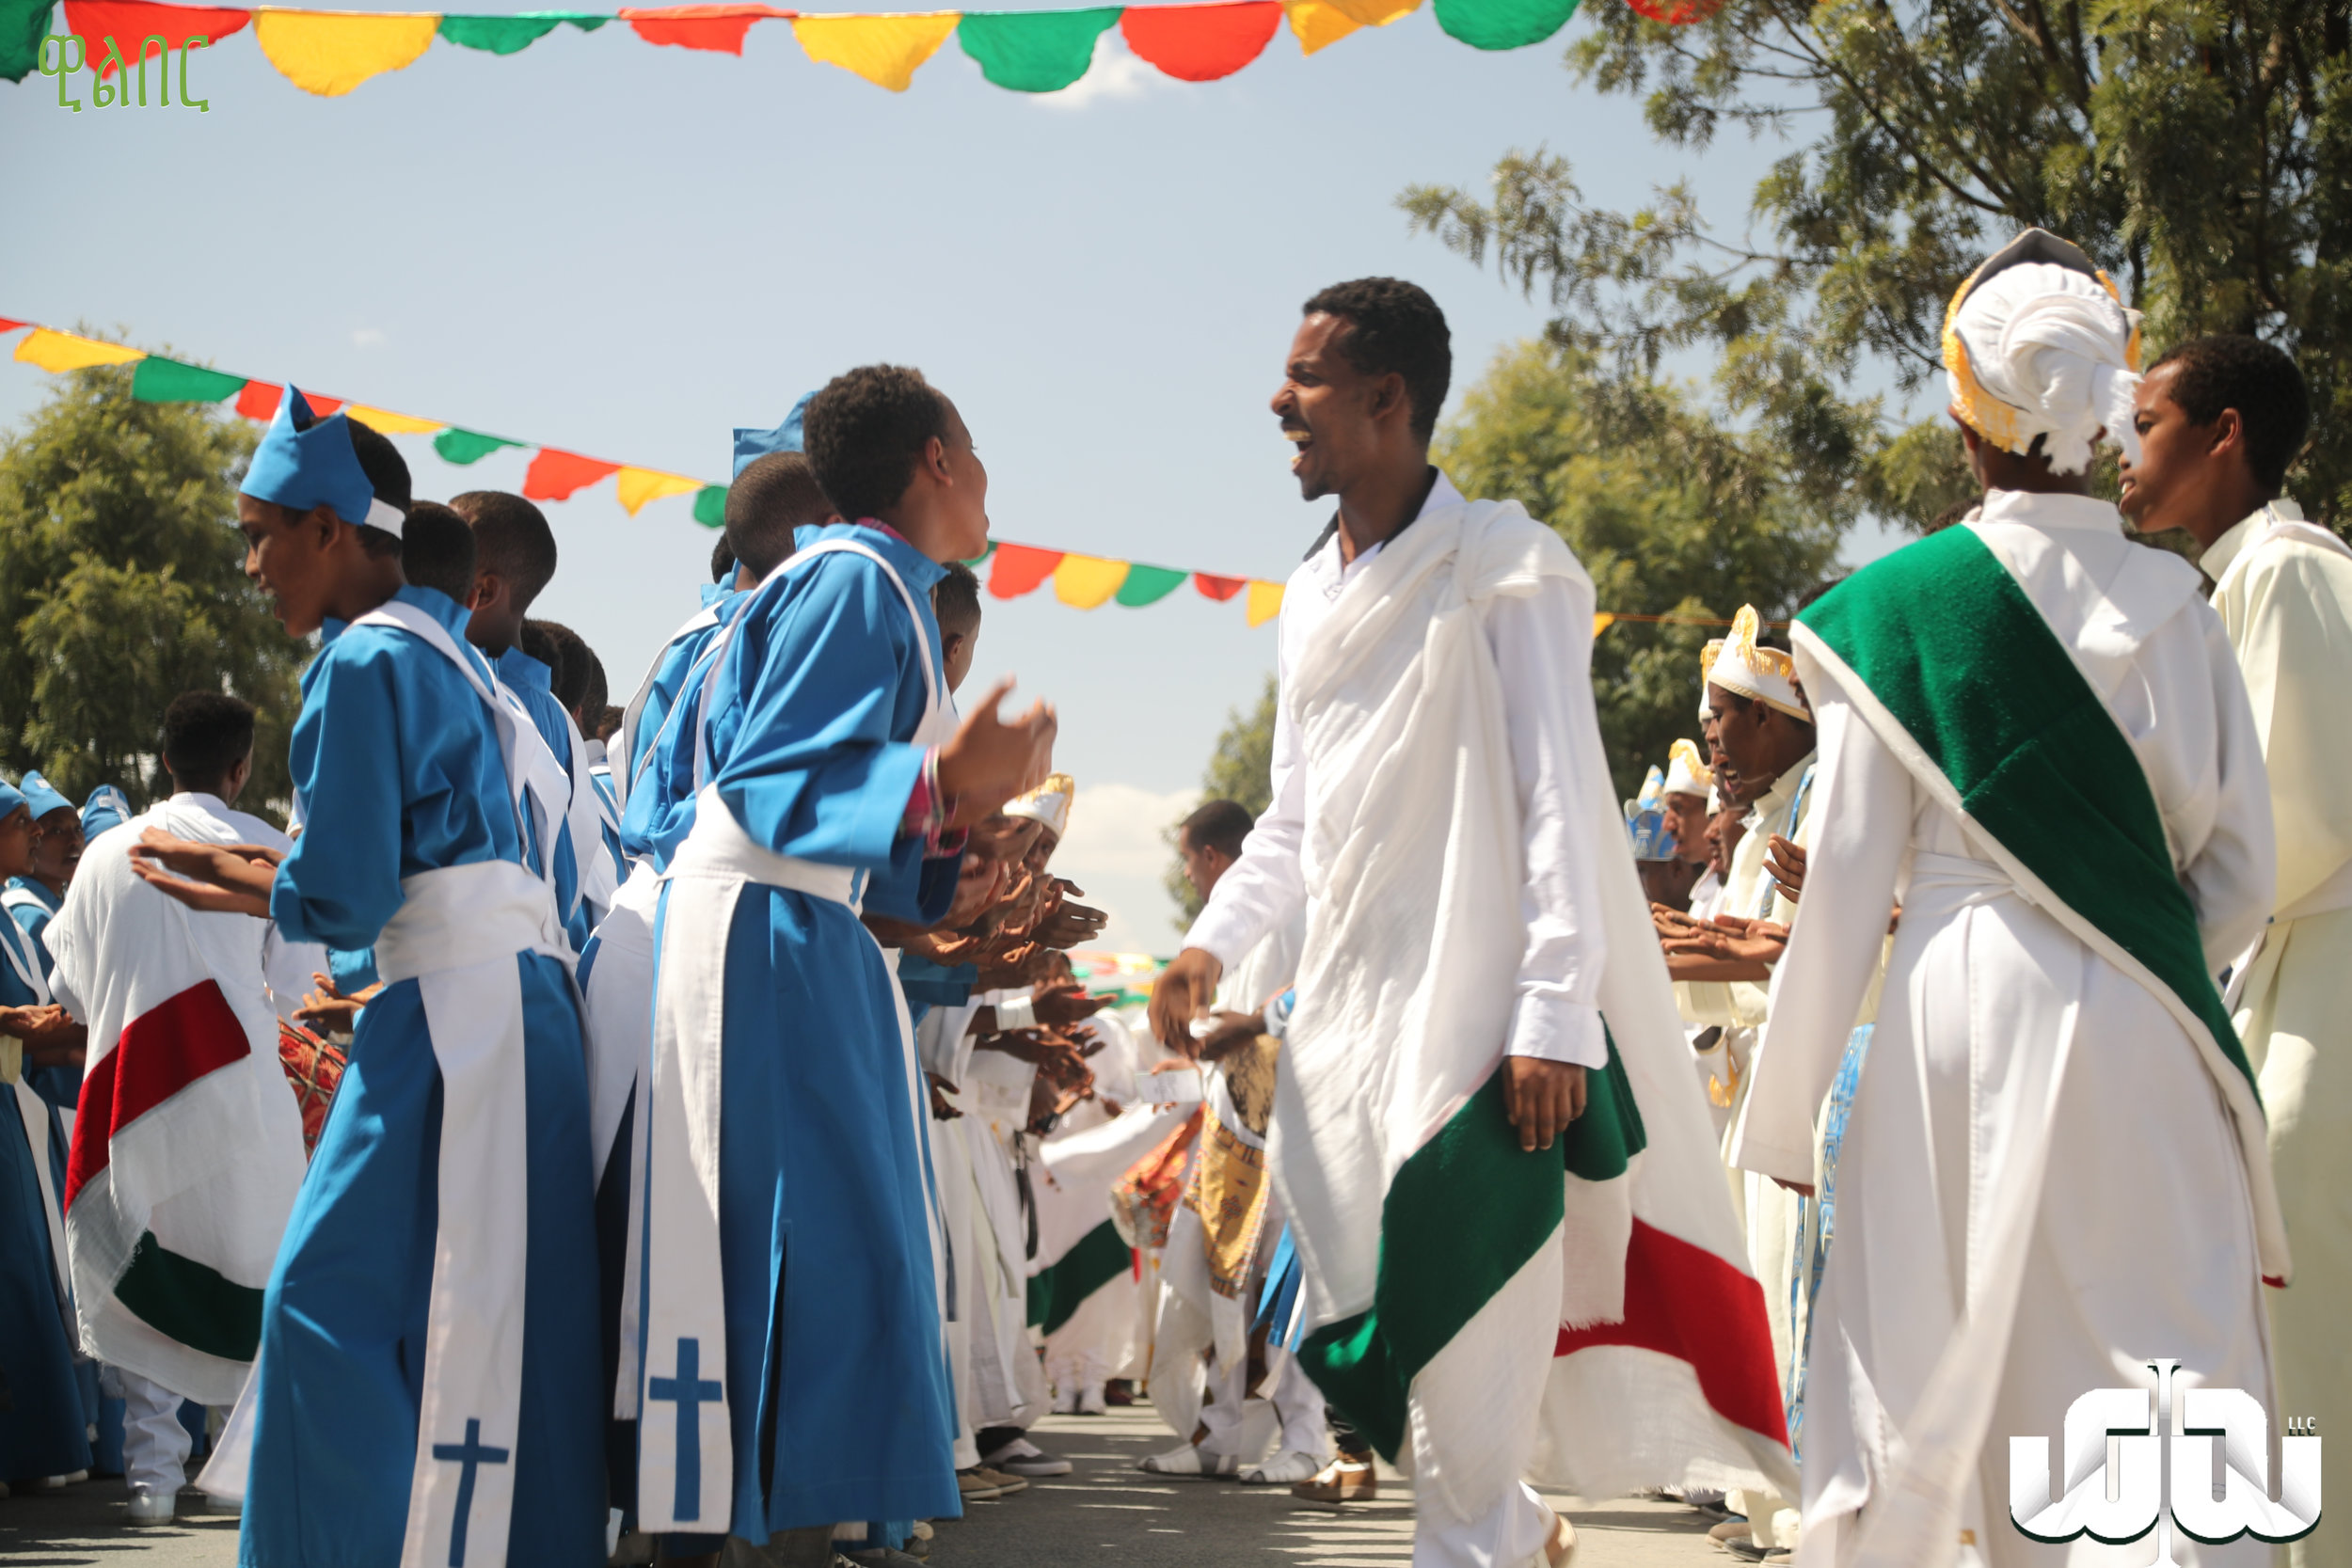 - The young braves leap up and down in spirited dances, tirelessly repeating rhythmic songs.